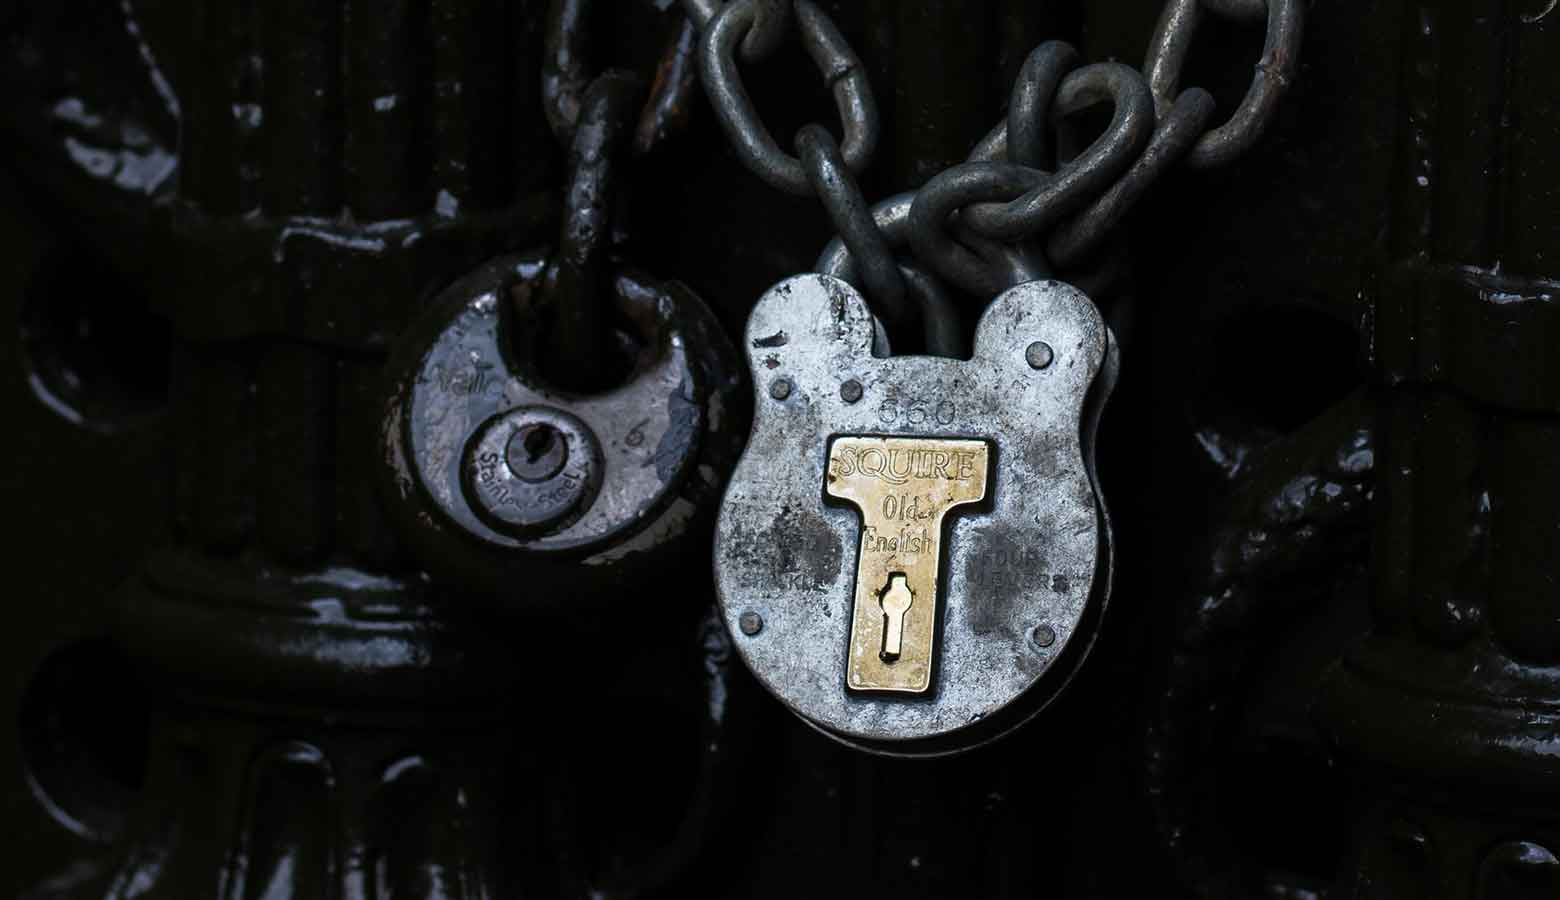 Image shows a lock to demonstrate the restrictions of GDPR